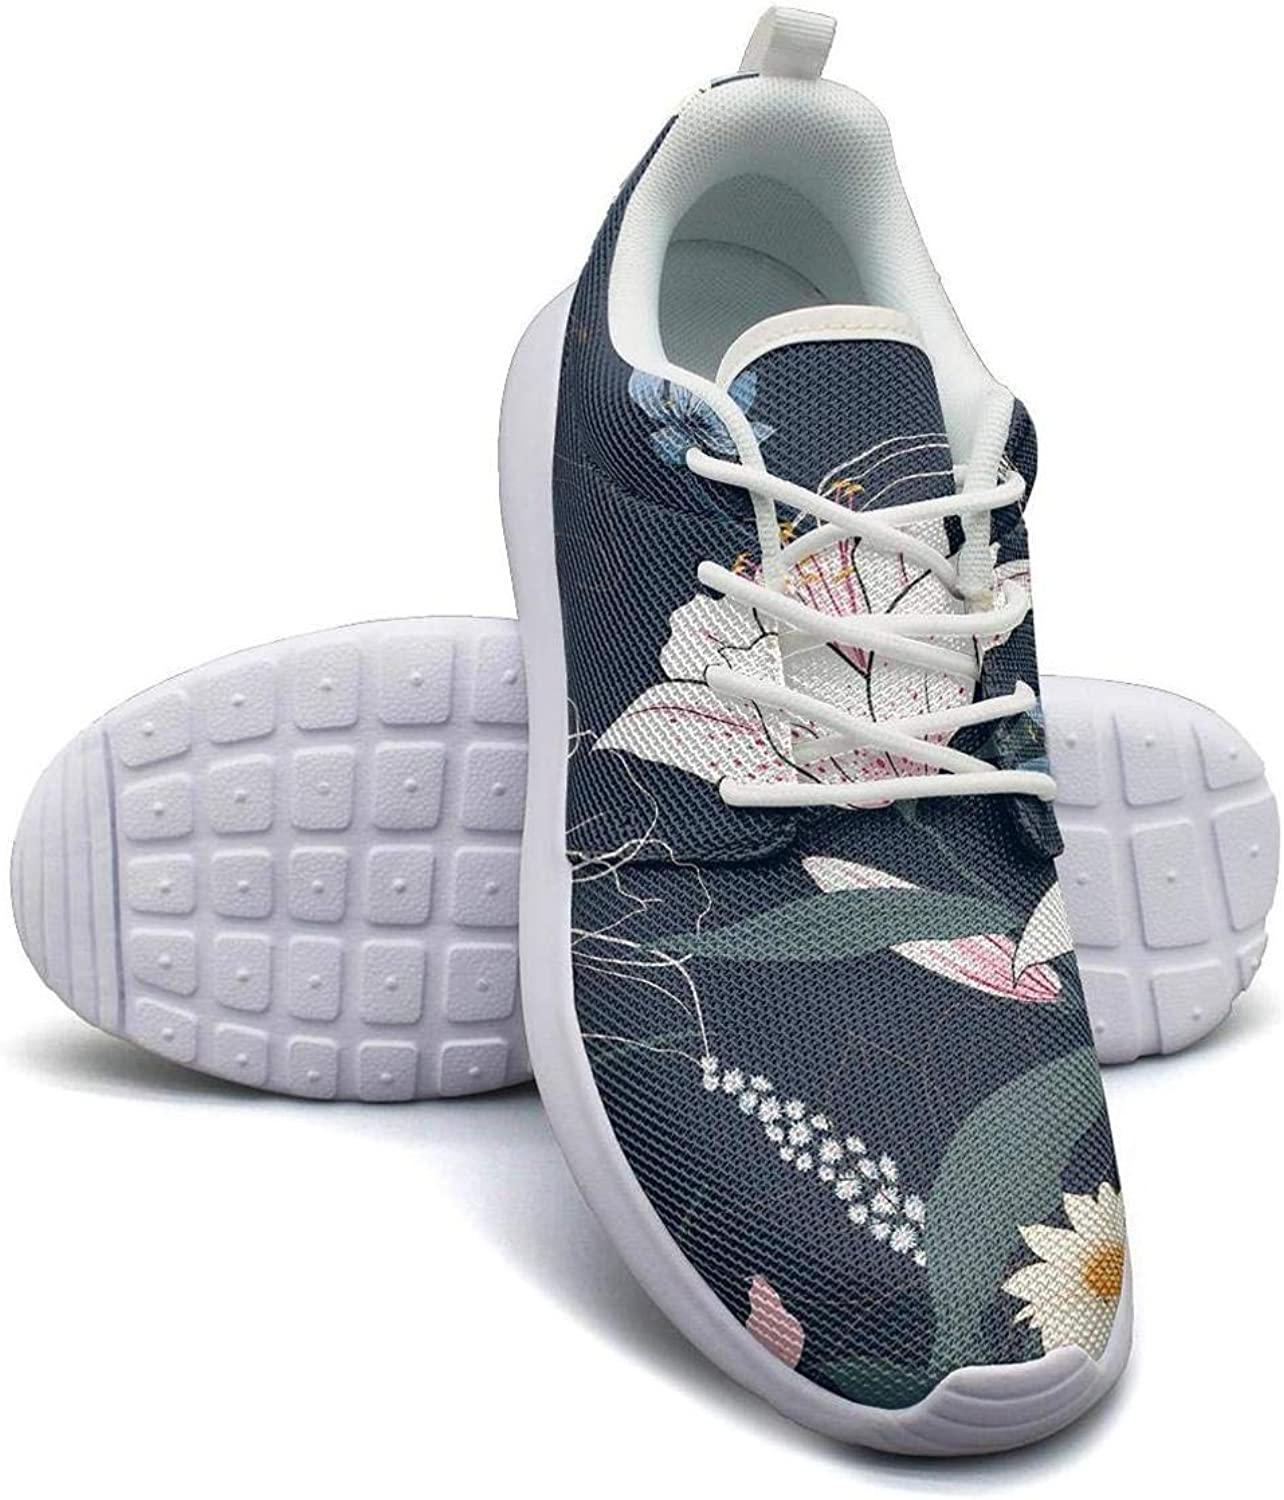 CHALi99 Fashion Female Youth Lightweight Mesh shoes Tropical Floral Lily Sneakers Walking Quick Dry